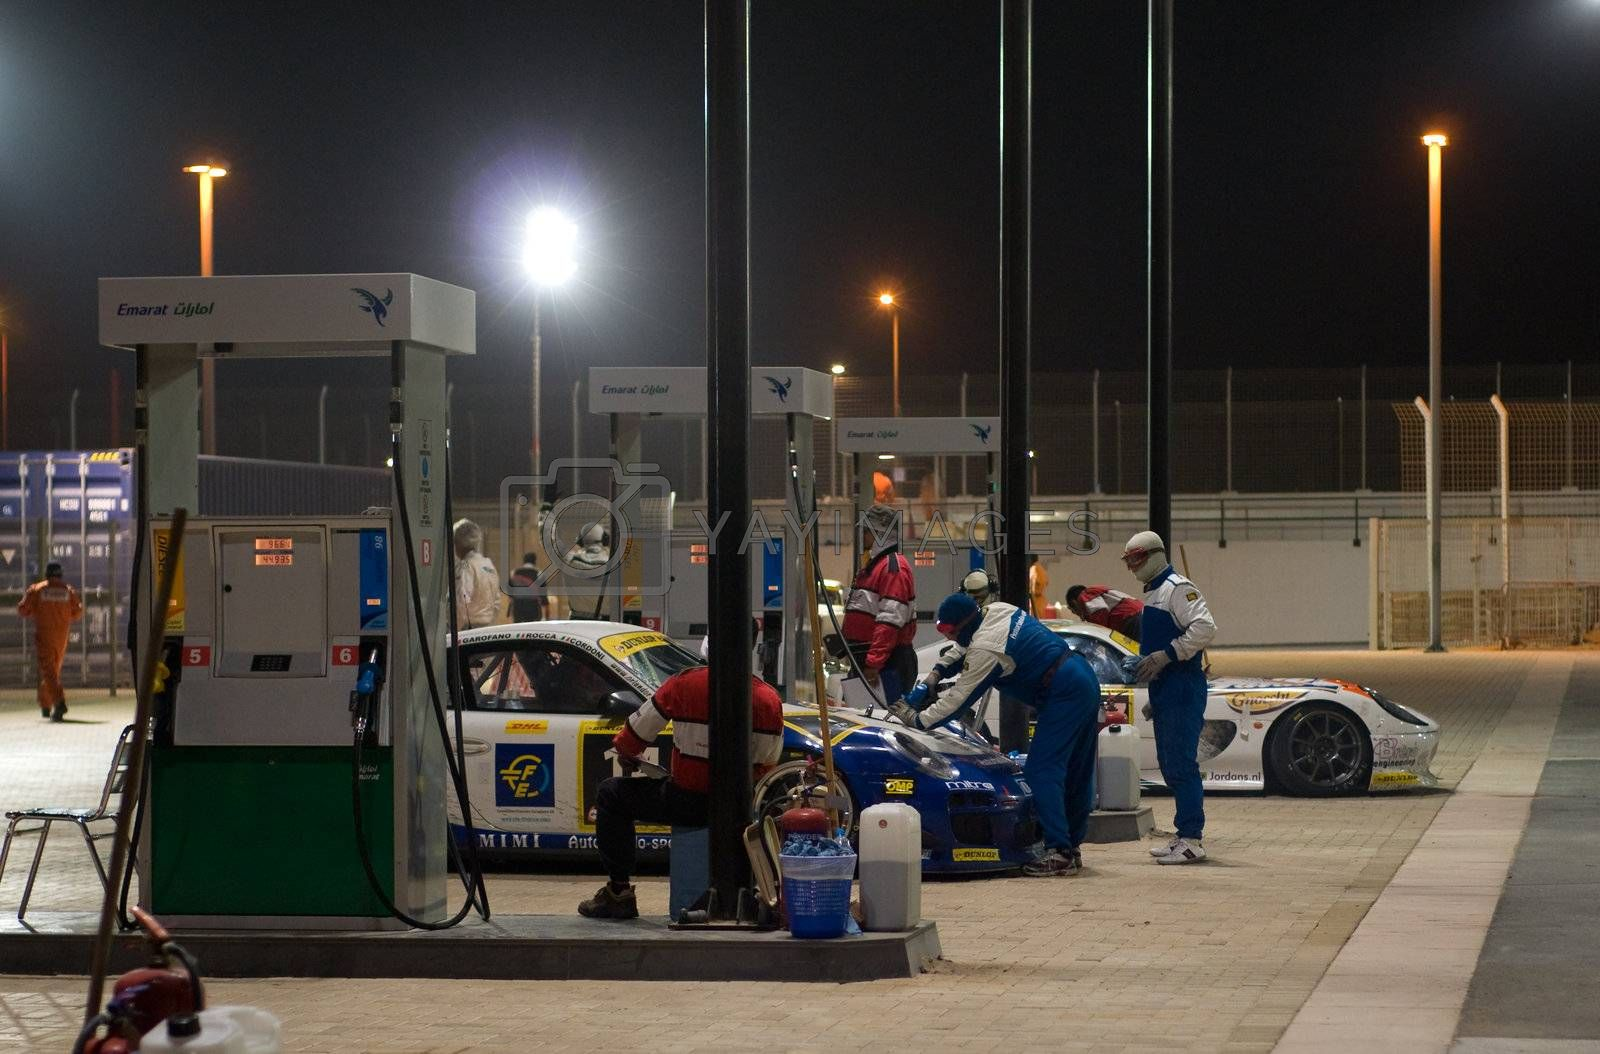 DUBAI - JANUARY 13: Re-fueling station for race cars in use during the 2012 Dunlop 24 Hour Race at Dubai Autodrome on January 13, 2012.